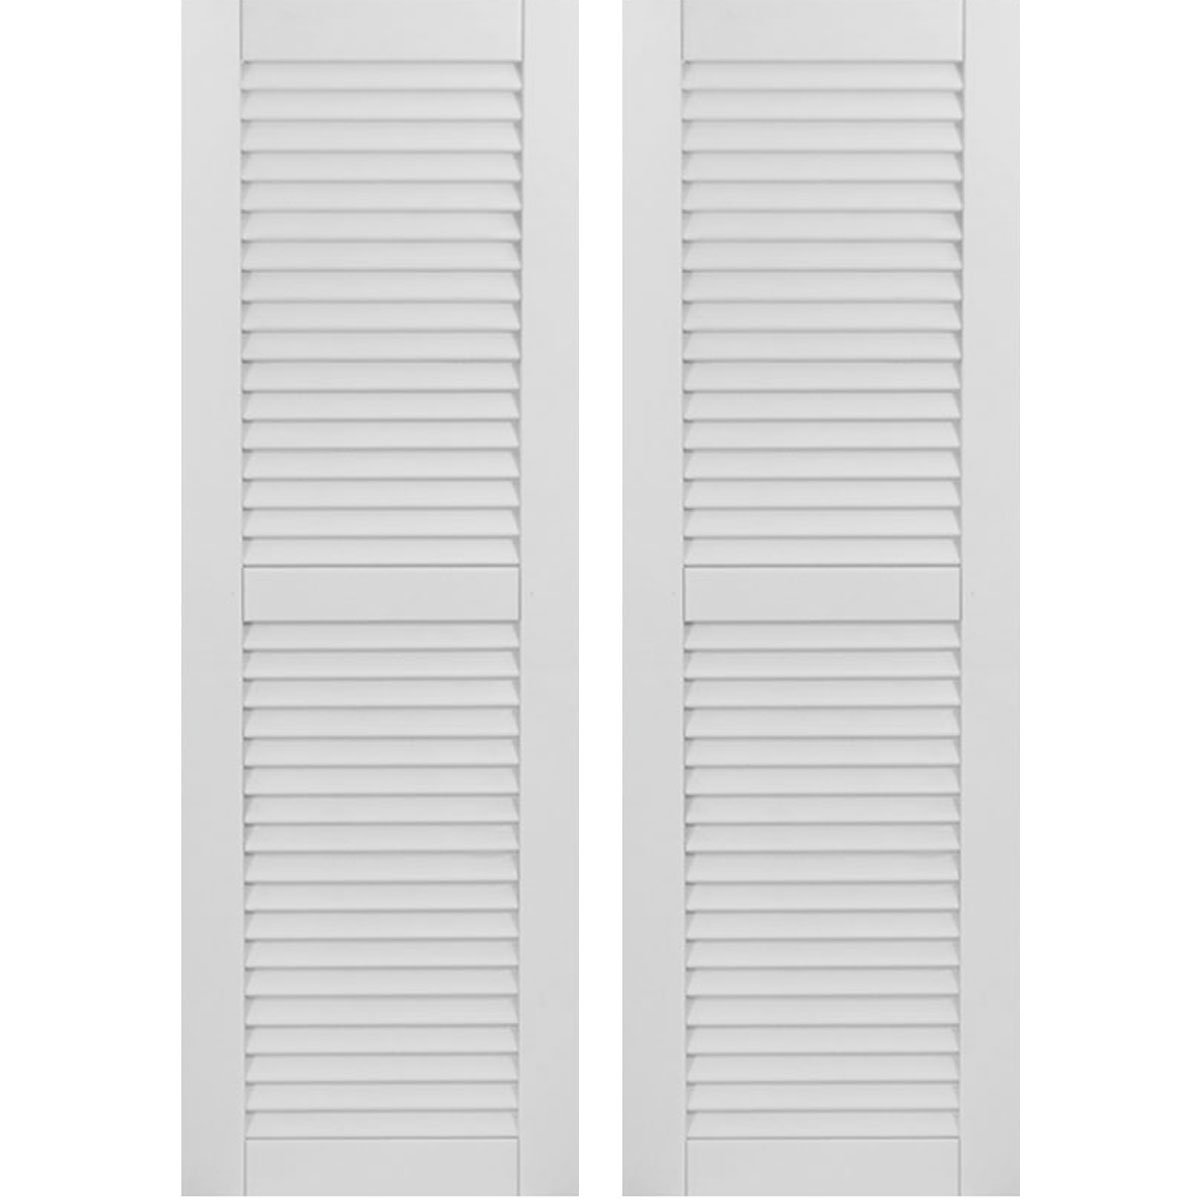 Ekena Millwork CWL15X045PRC Exterior Composite Wood Louvered Shutters with Installation Brackets (Per Pair), Primed, 15